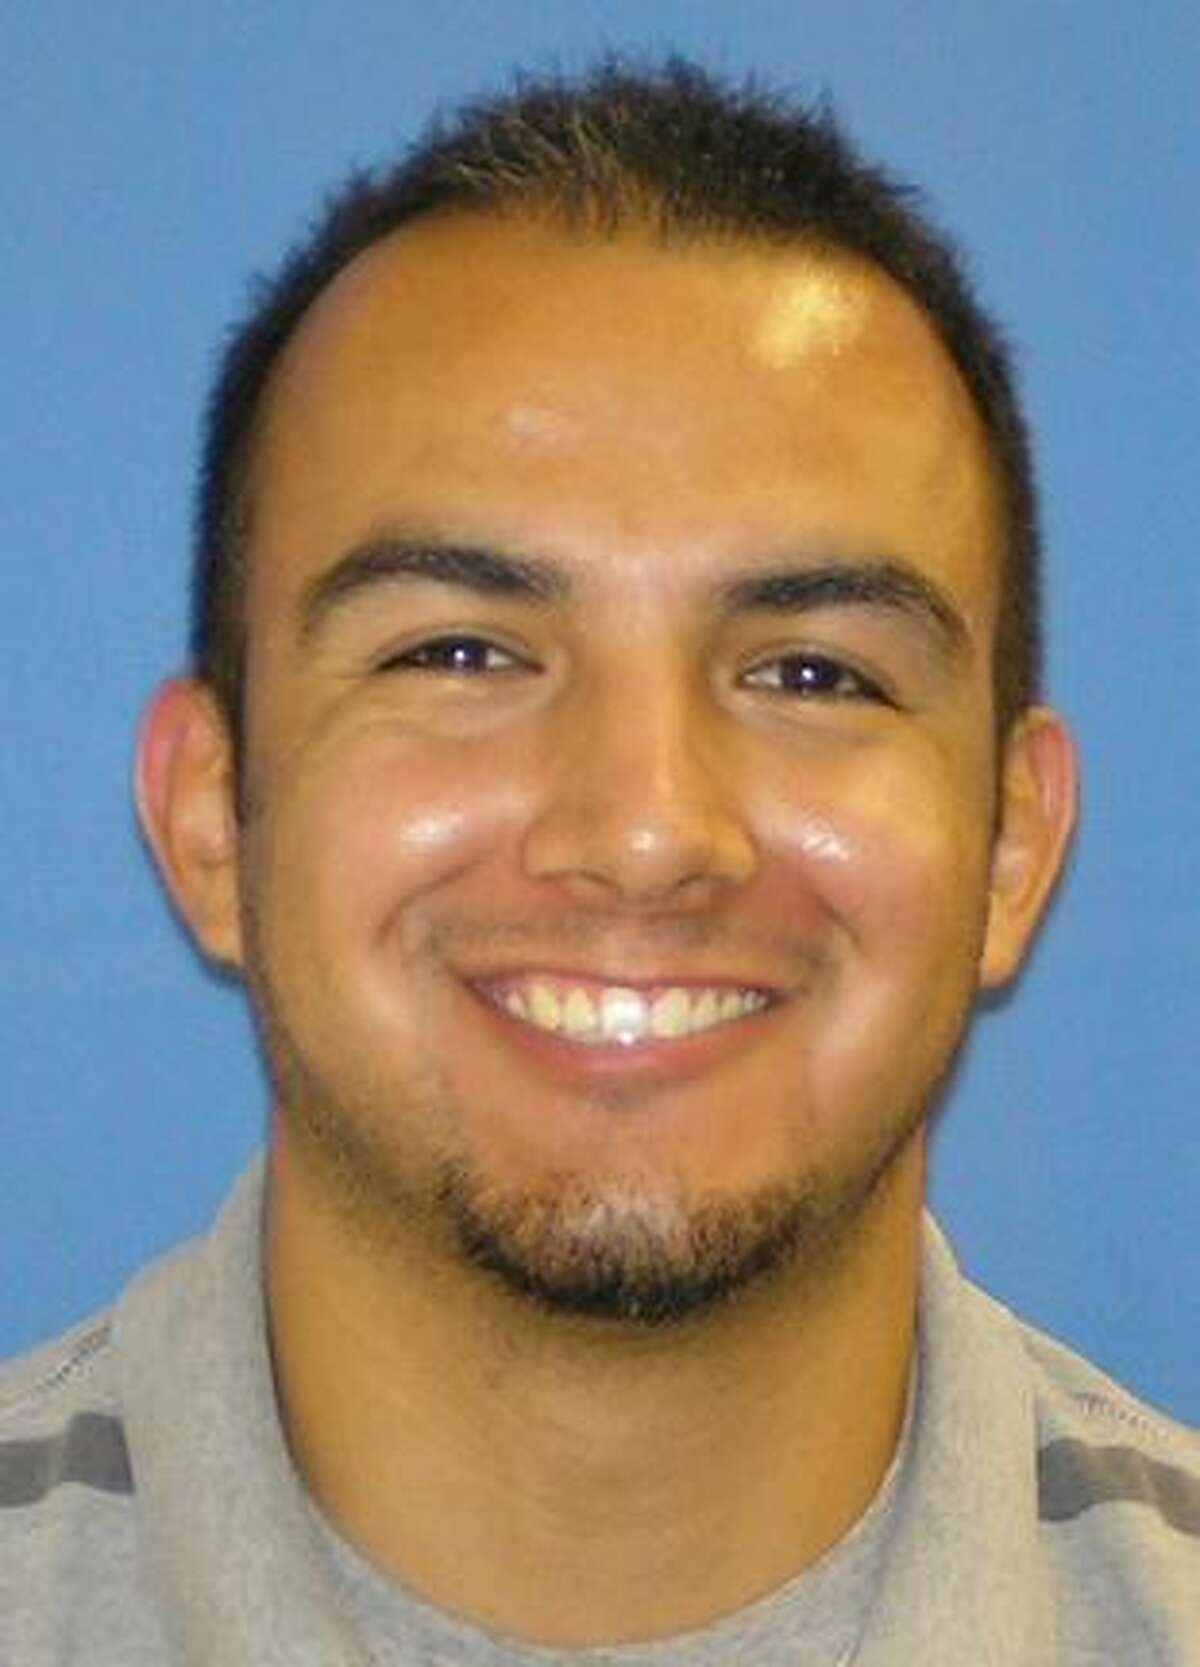 On Monday, El Paso ISD police arrested Joel Provencio, a 31-year-old former teacher at Jefferson High School, on a charge of improper relationship between an educator and student, according to El Paso County jail records.